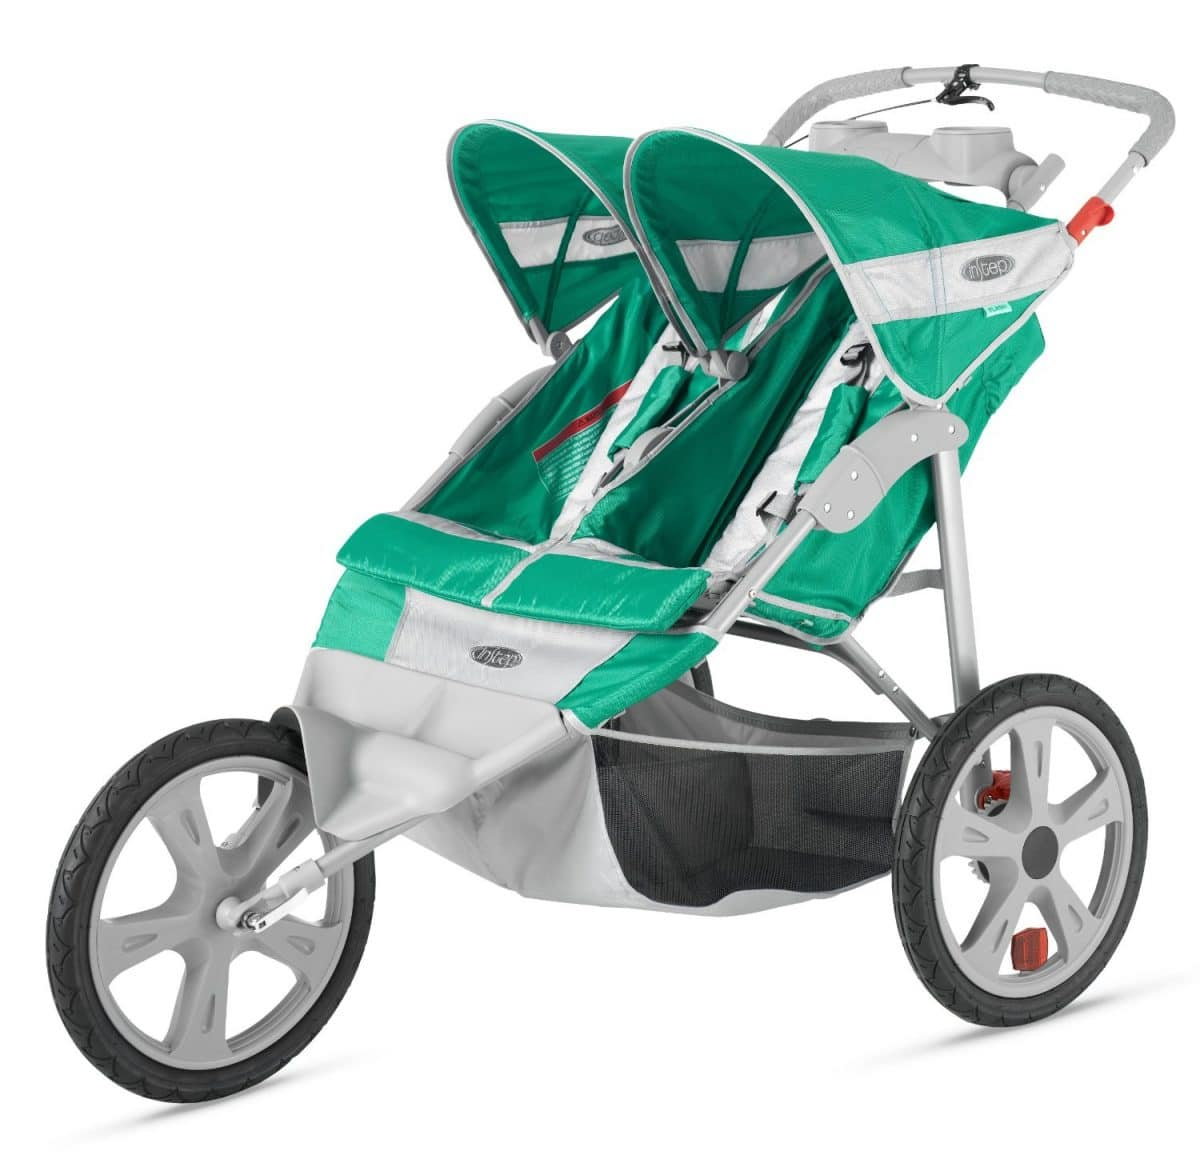 Best Newborn Prams Australia 2018 The 10 Best Double Jogging Strollers To Buy 2019 Littleonemag